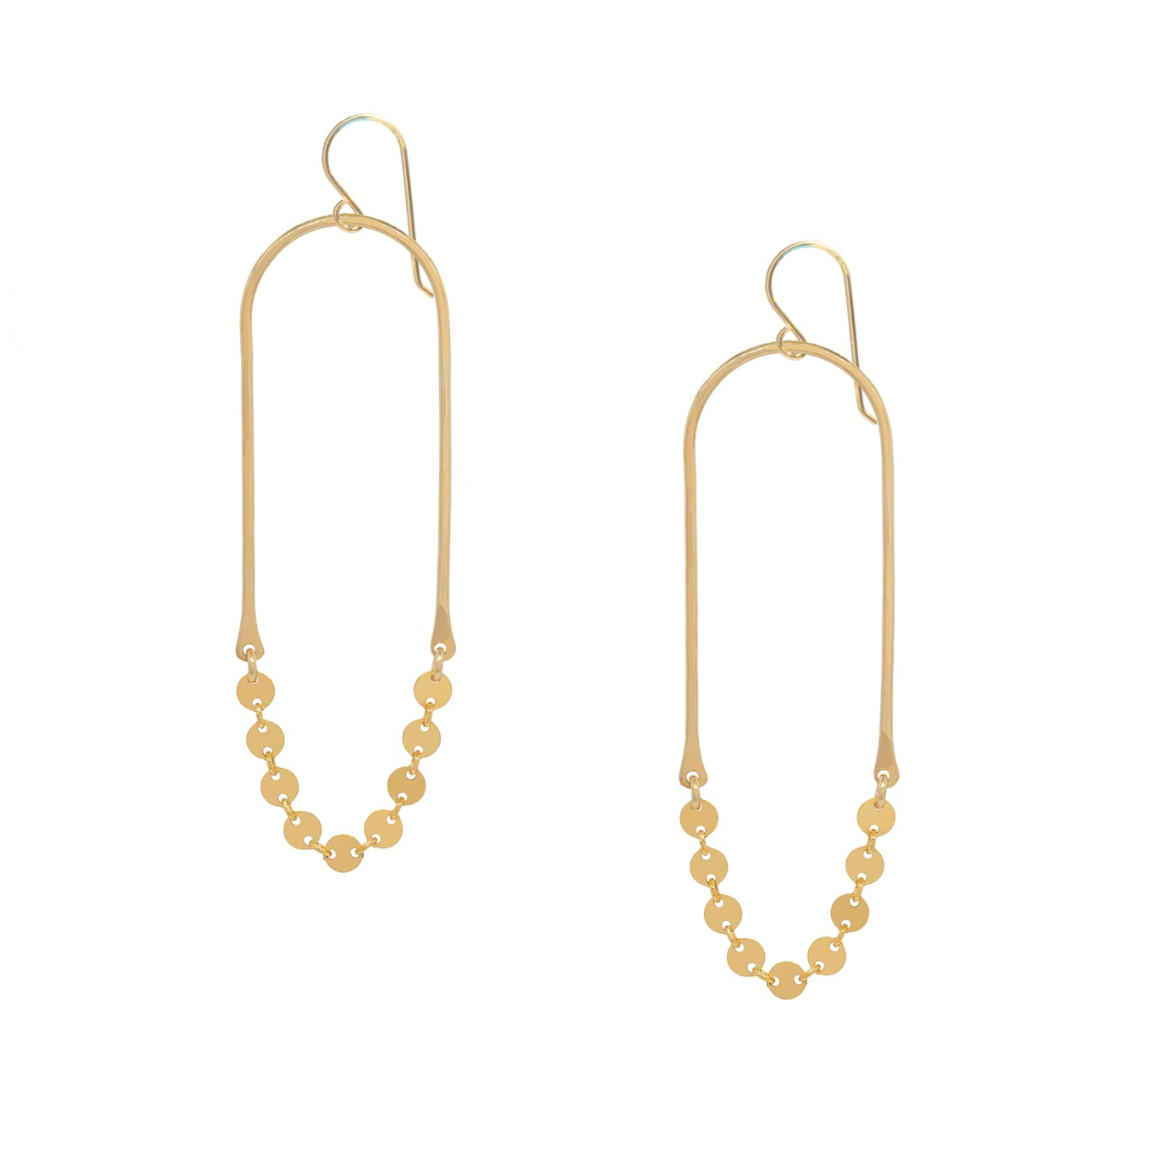 The Fabiana Earrings